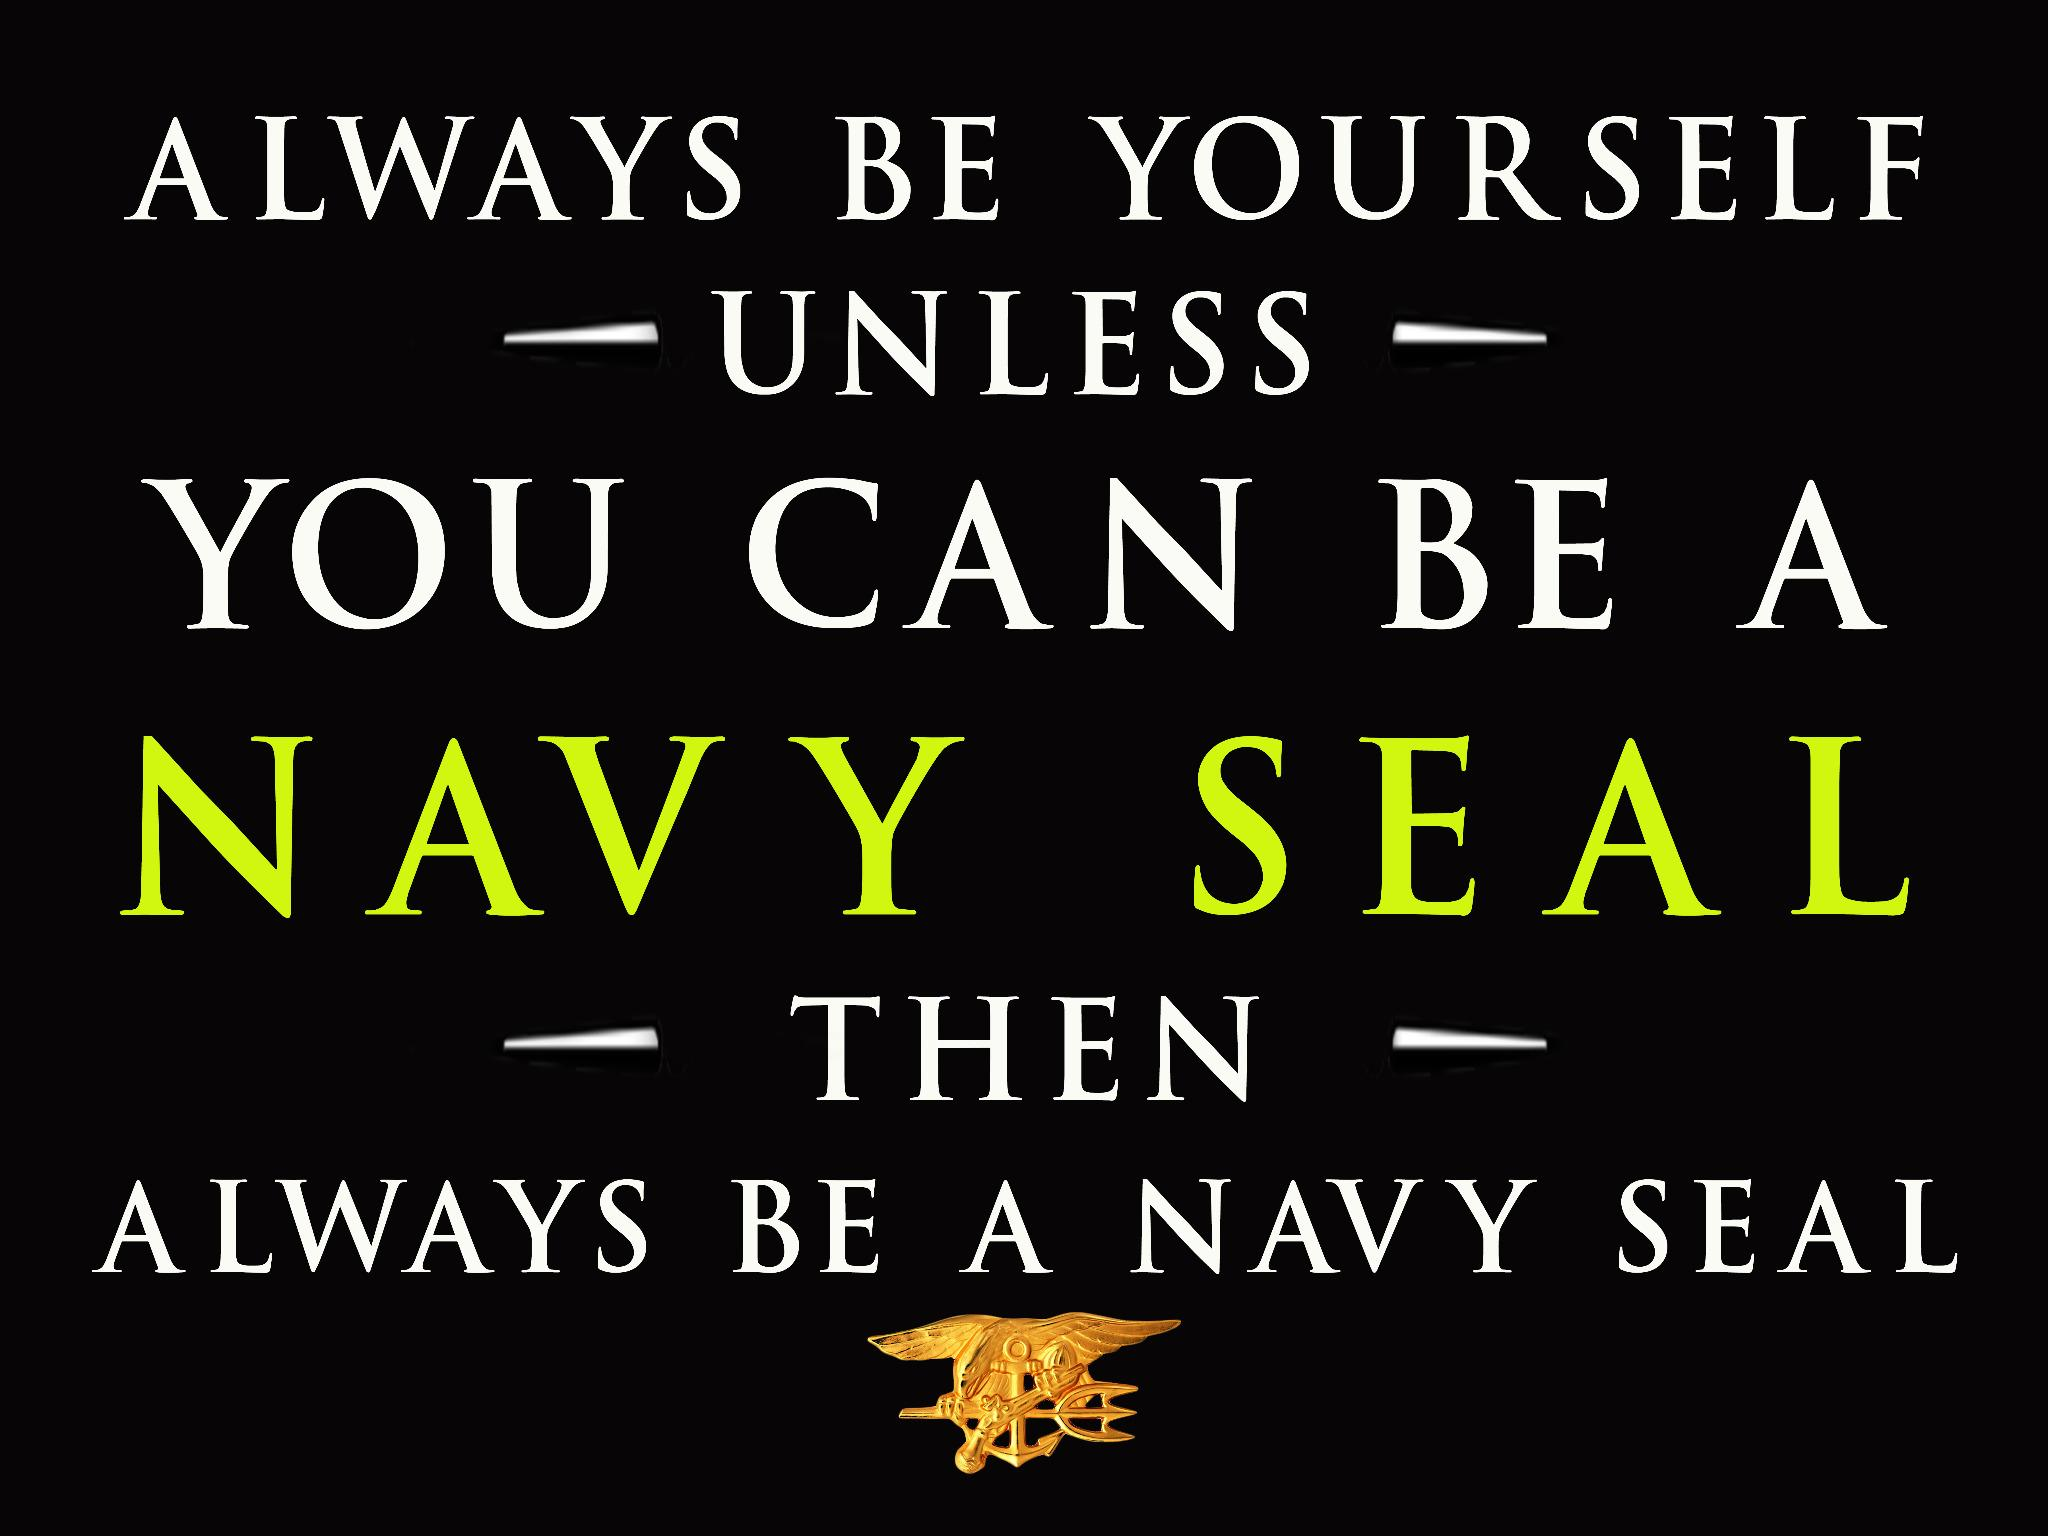 how to change your navy discharge status